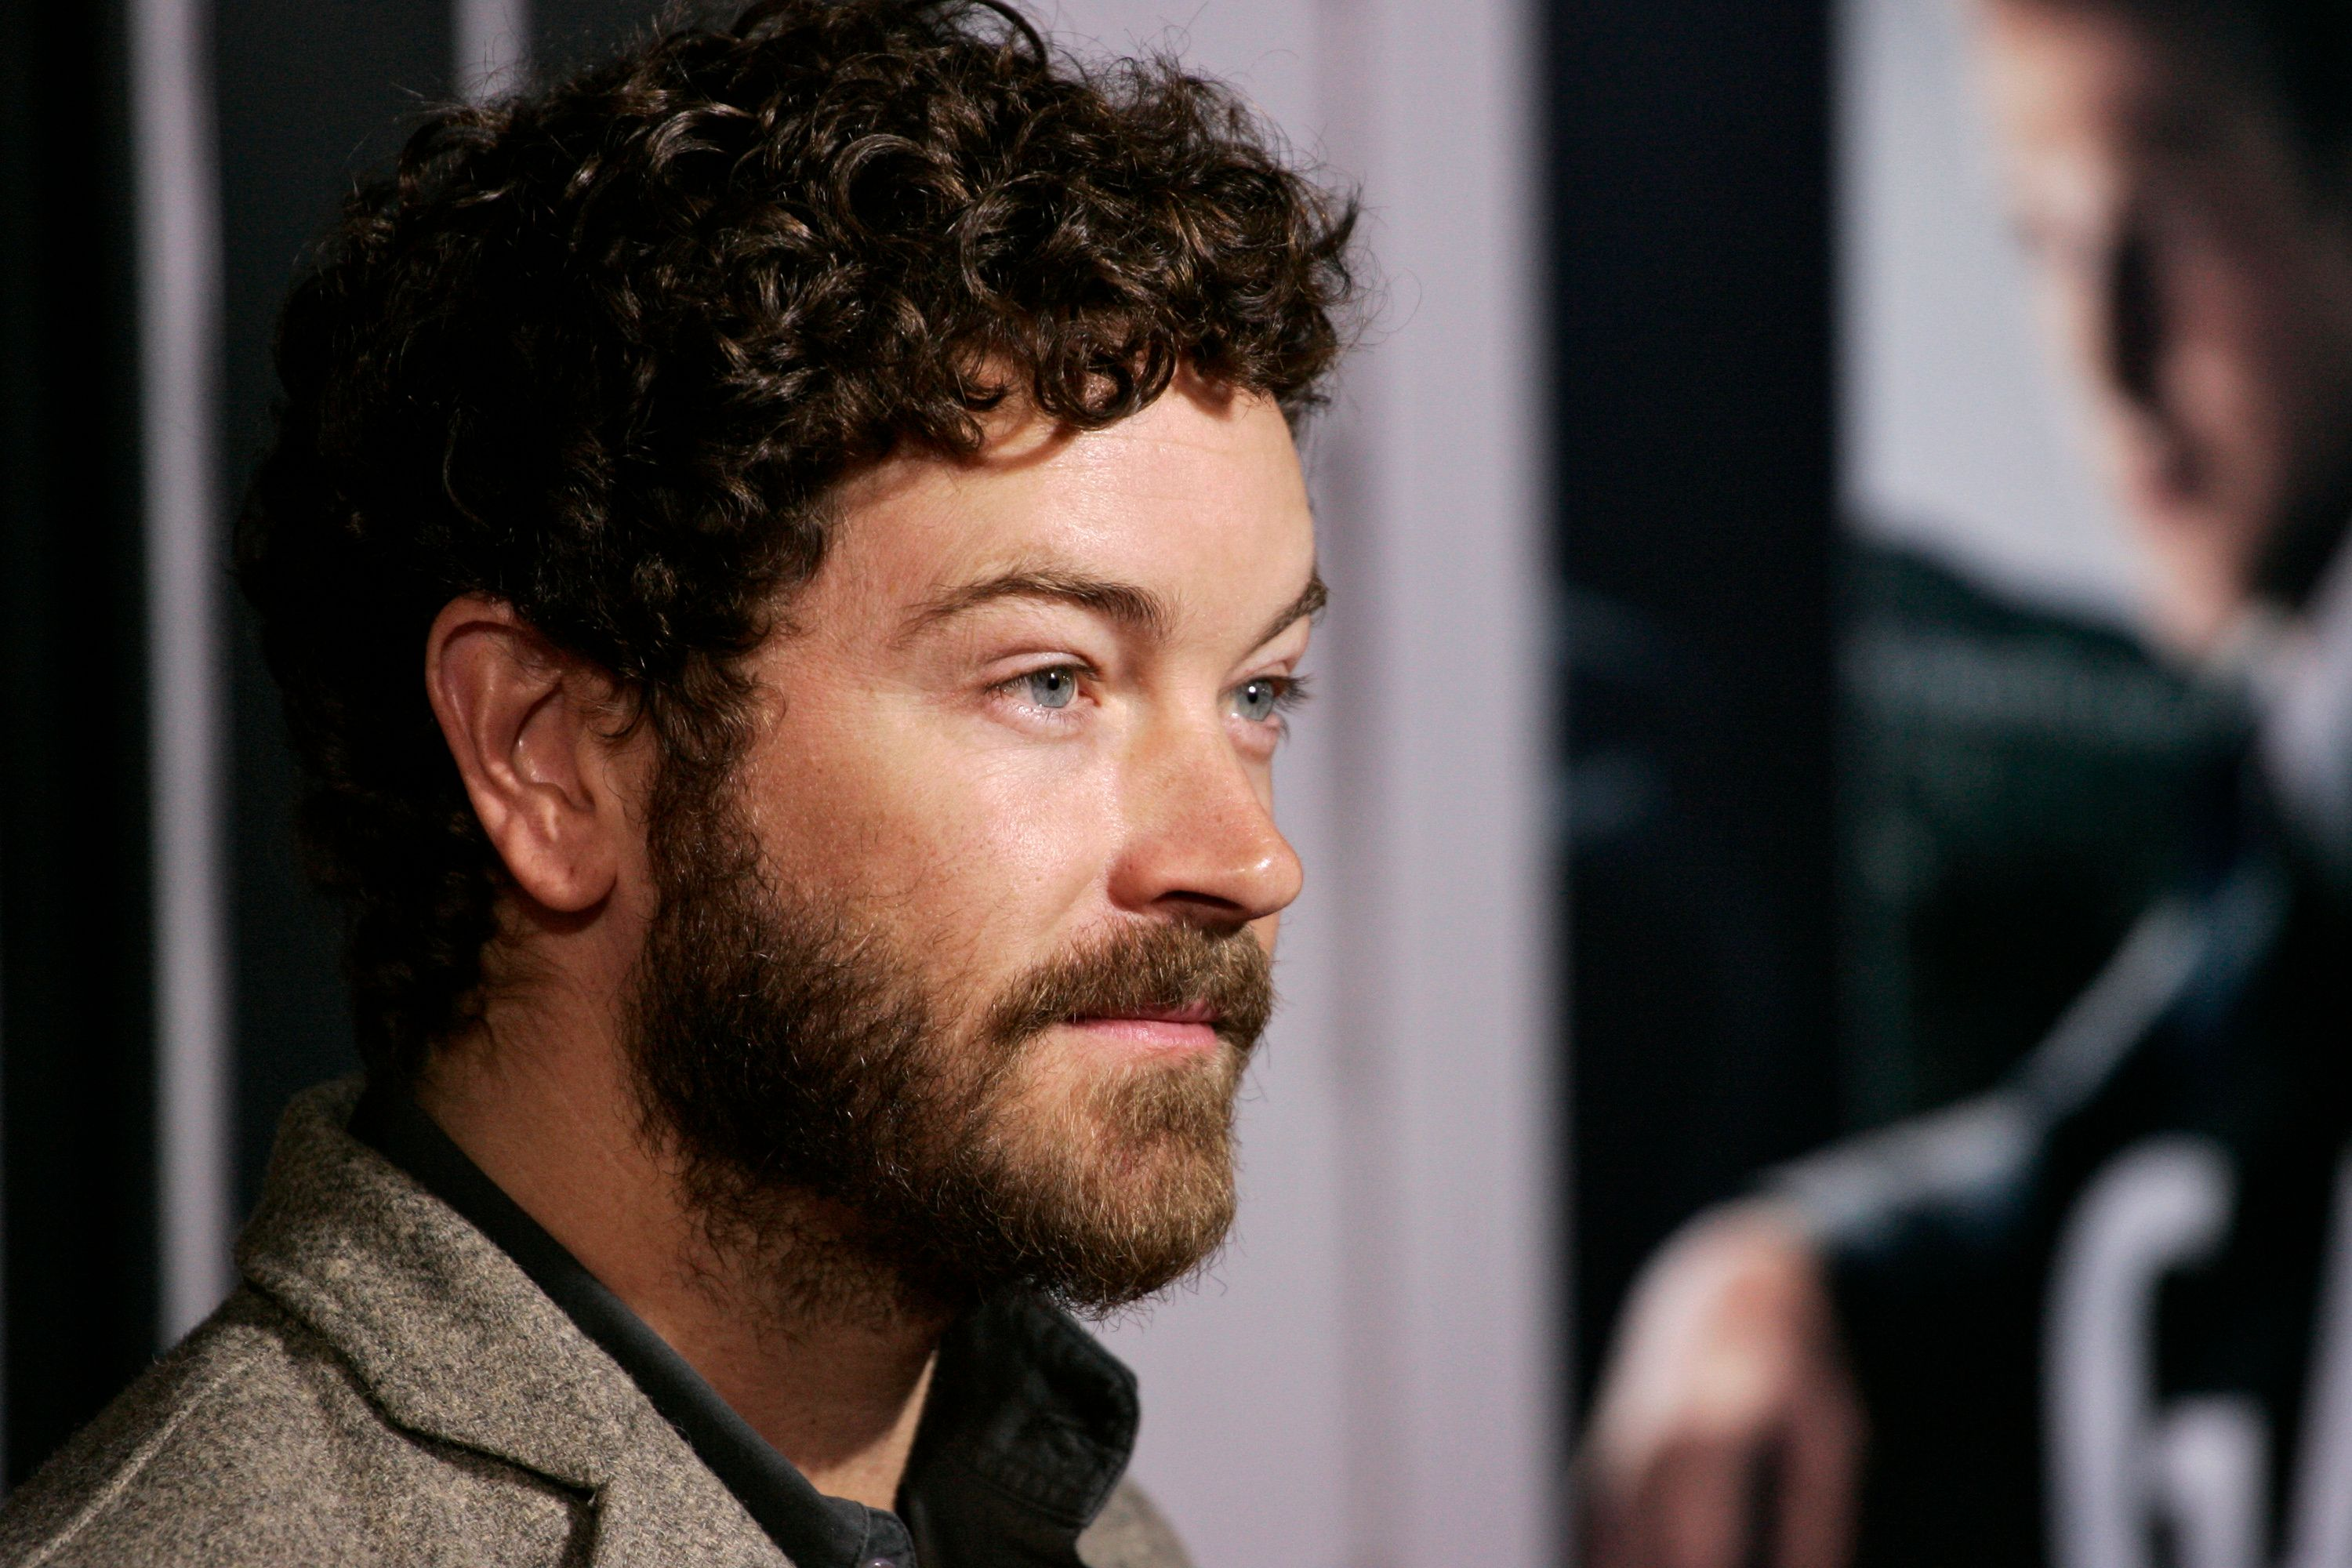 Danny Masterson's Publicist Suggested A Woman Can't Be Raped By A Man She's In A Relationship